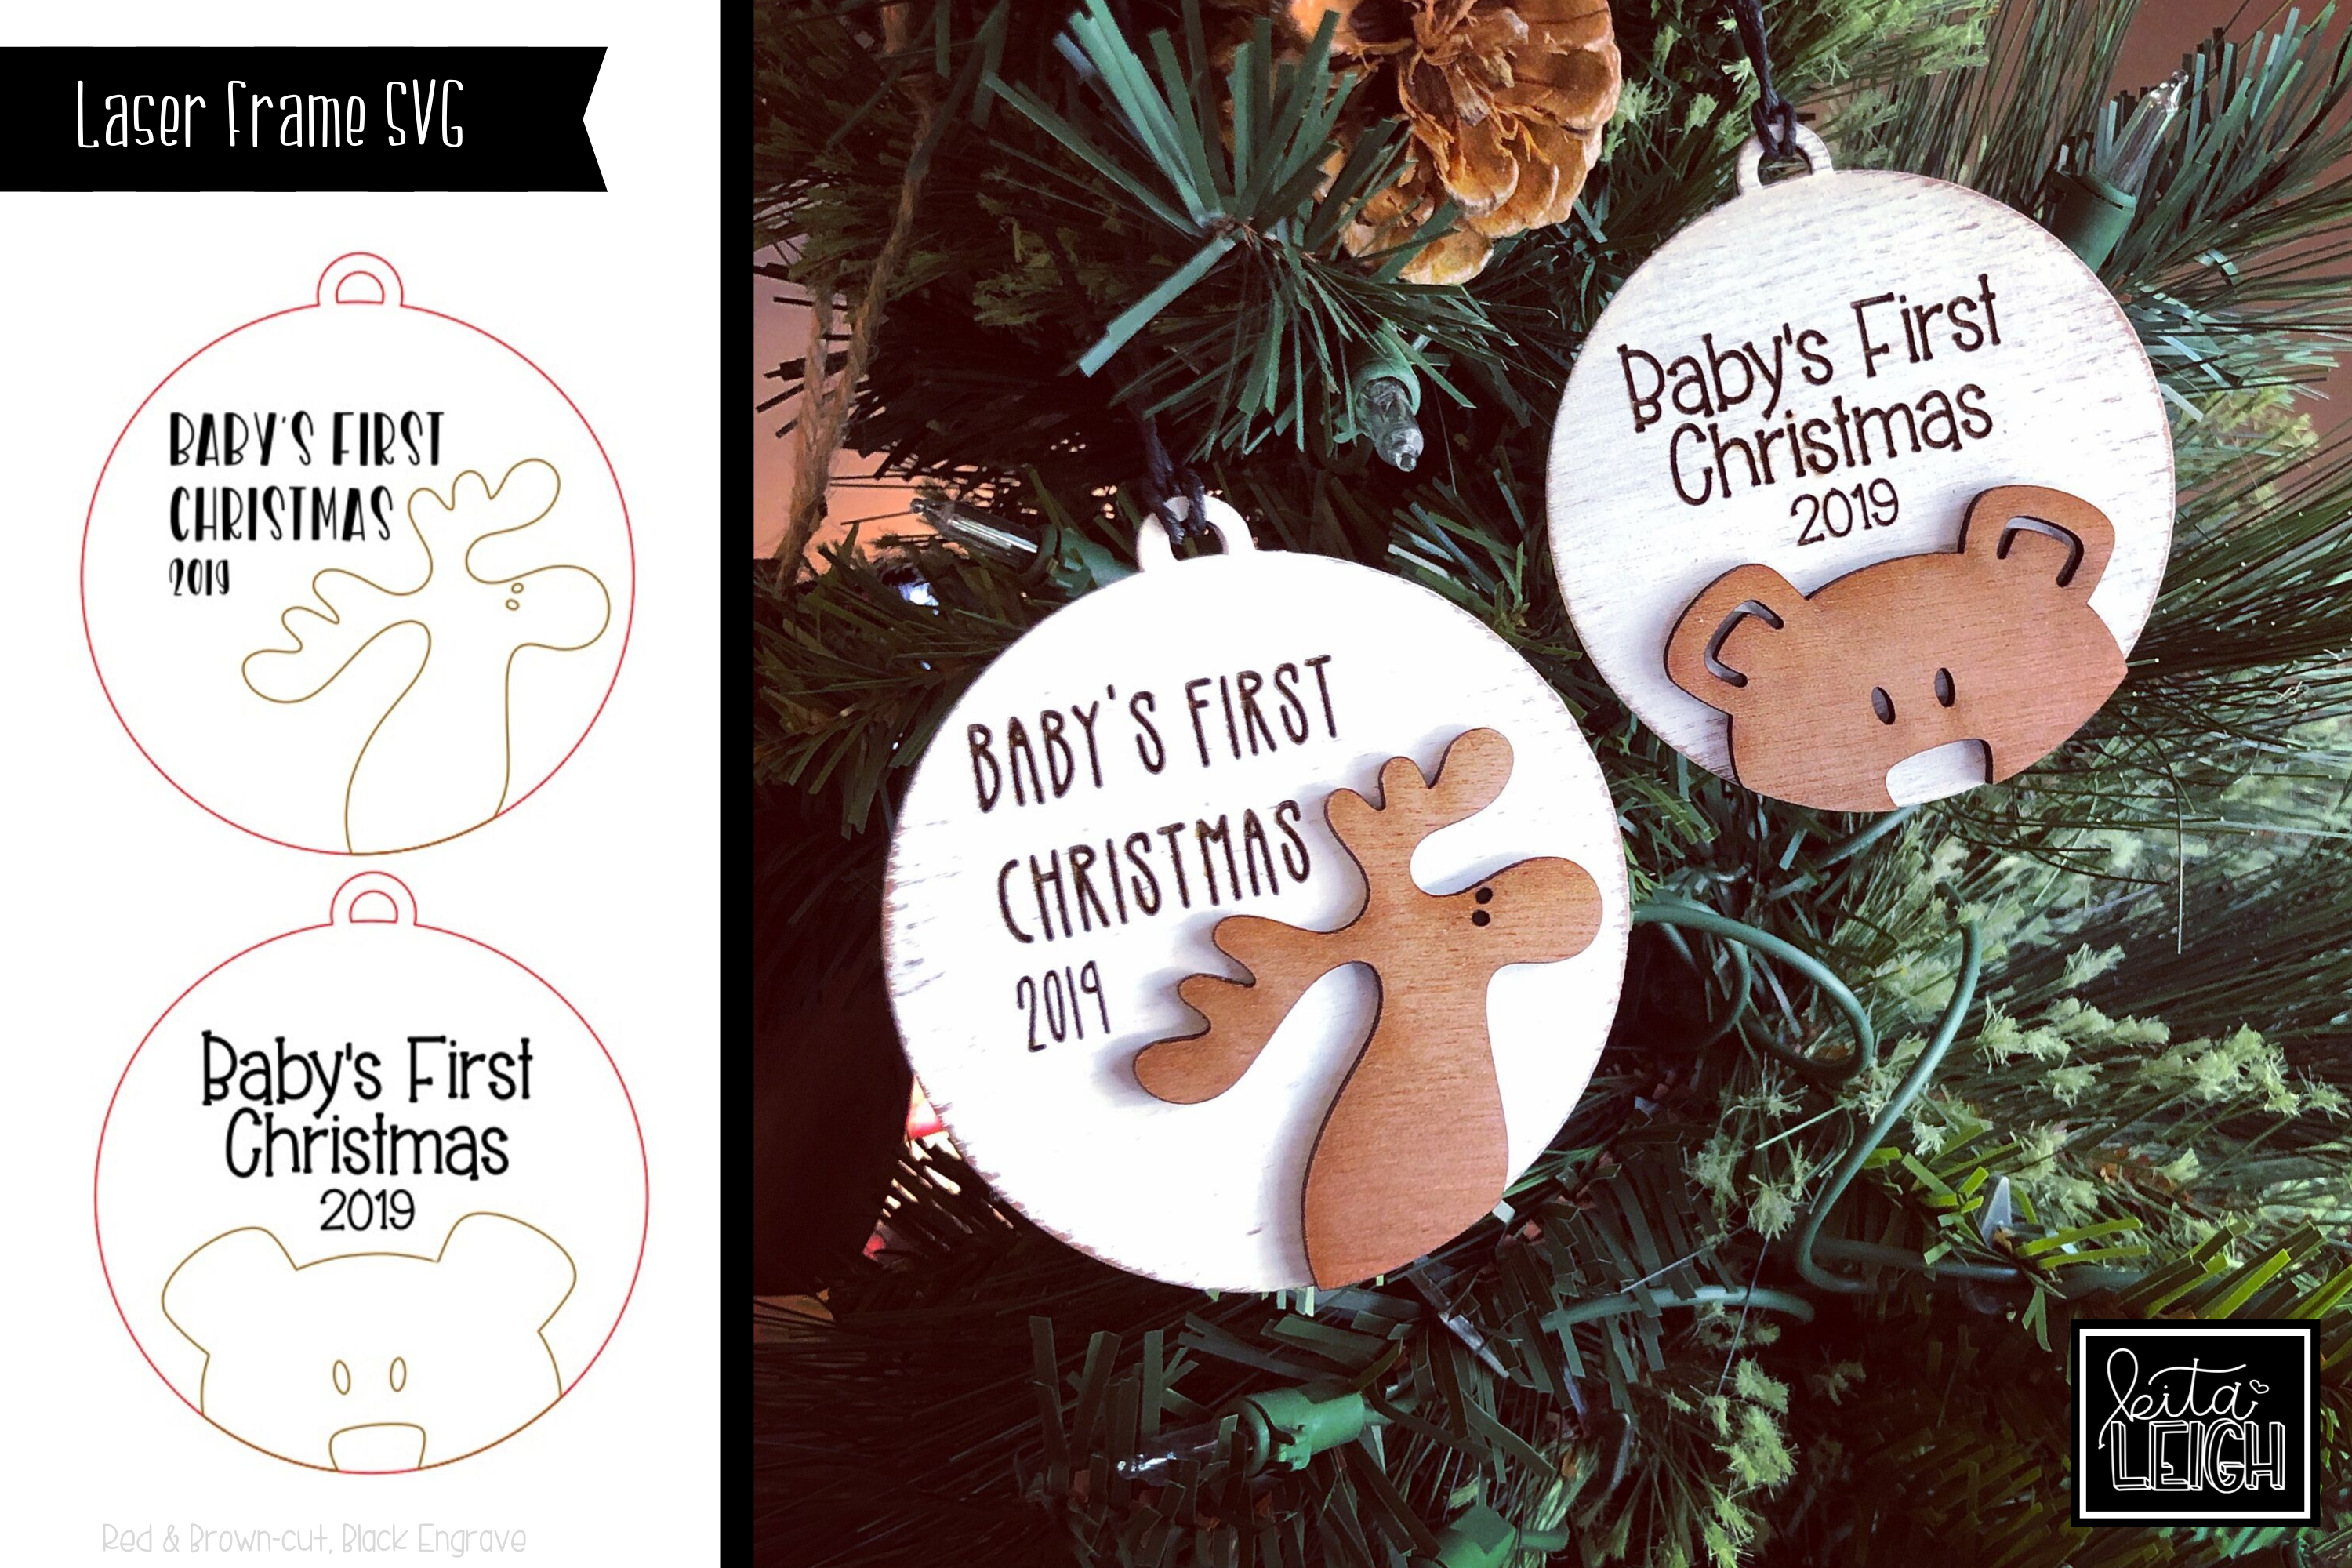 Laser Engraved/Cut Baby's First Christmas 2019 Ornaments SVG example image 1